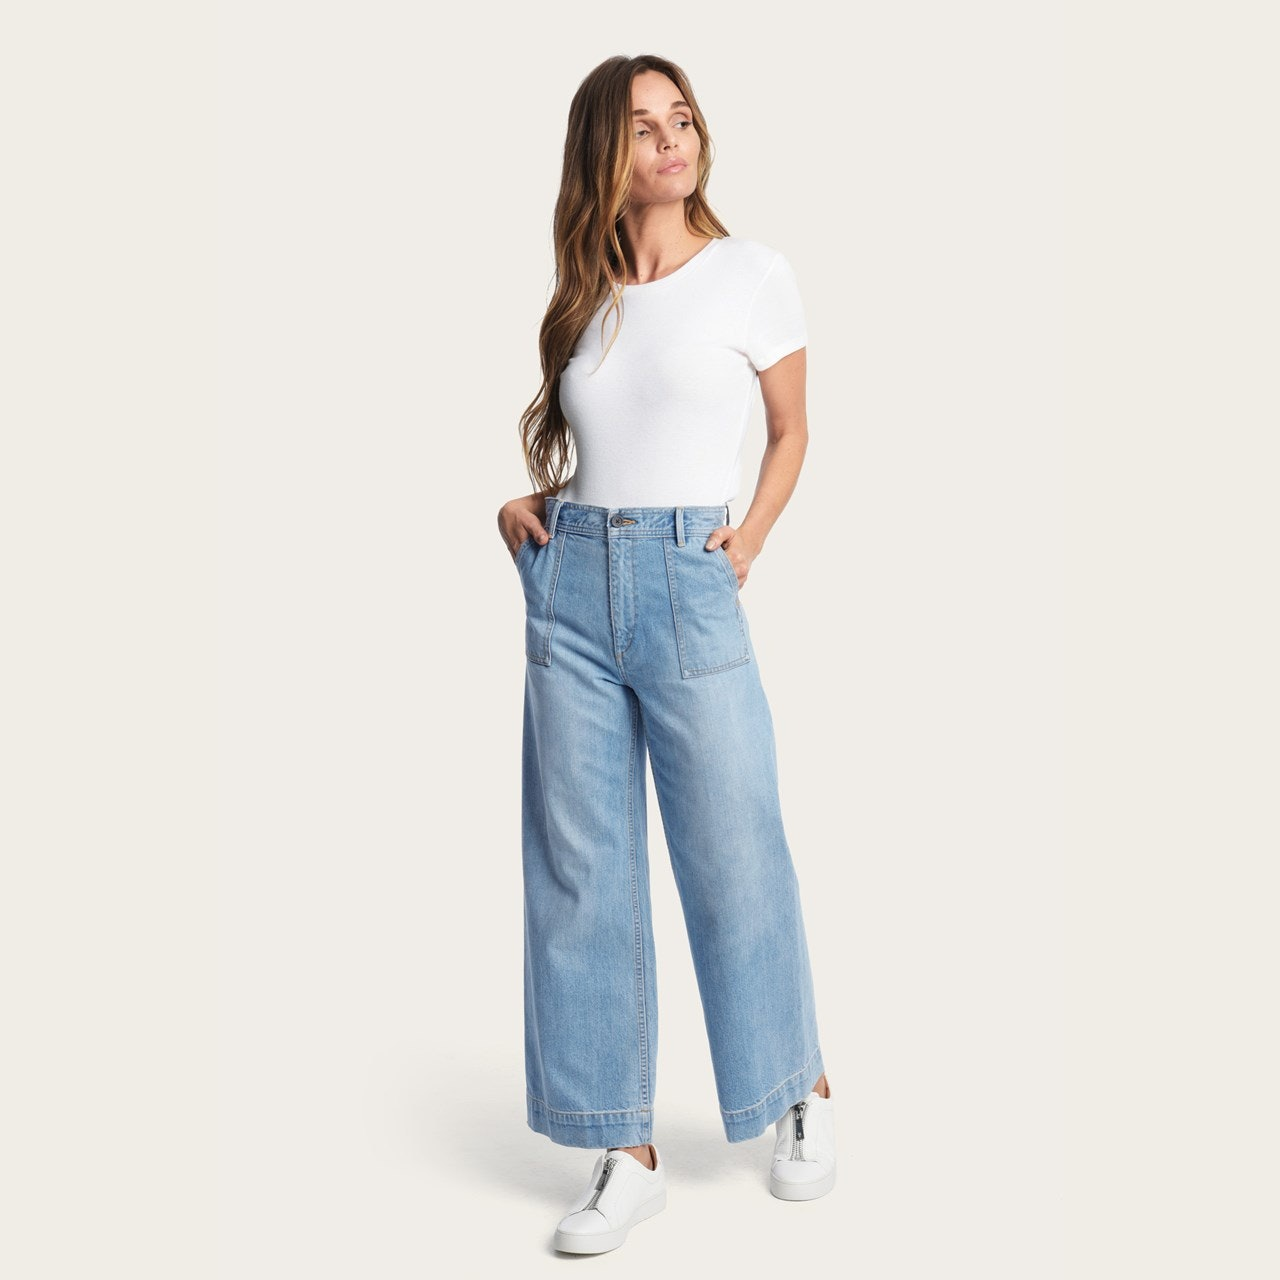 d5c5f550fdea Frye s New Clothing Collection Features The Perfect Wide-Leg Pants